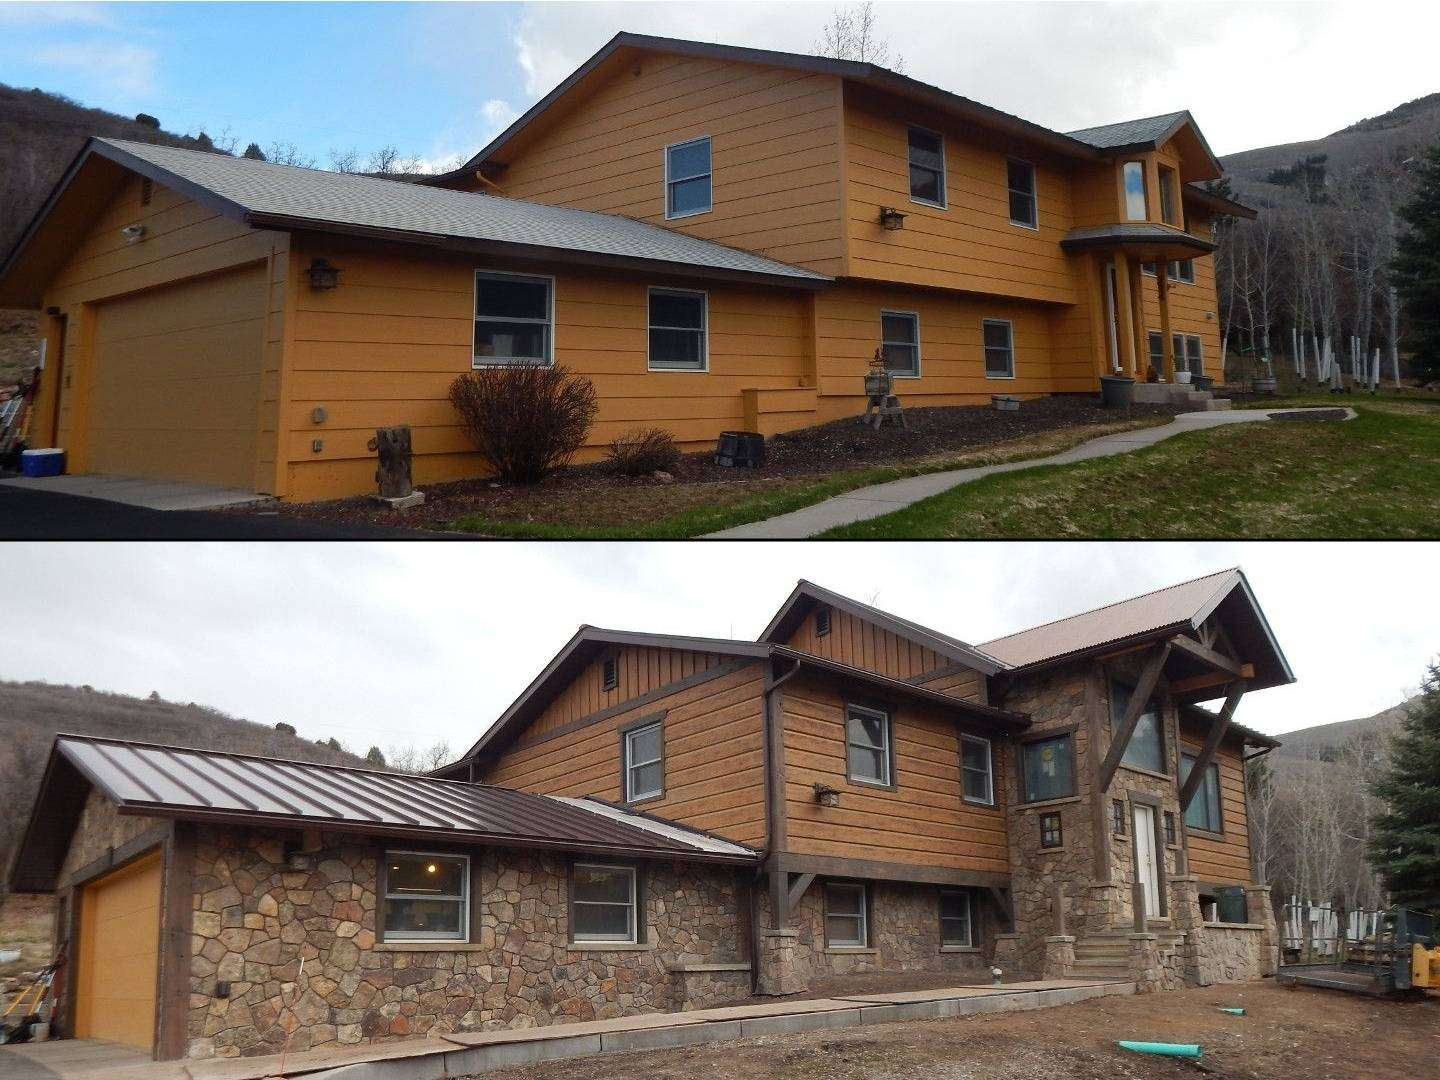 Before and After of Home Renovation with EverLog Concrete Log Siding